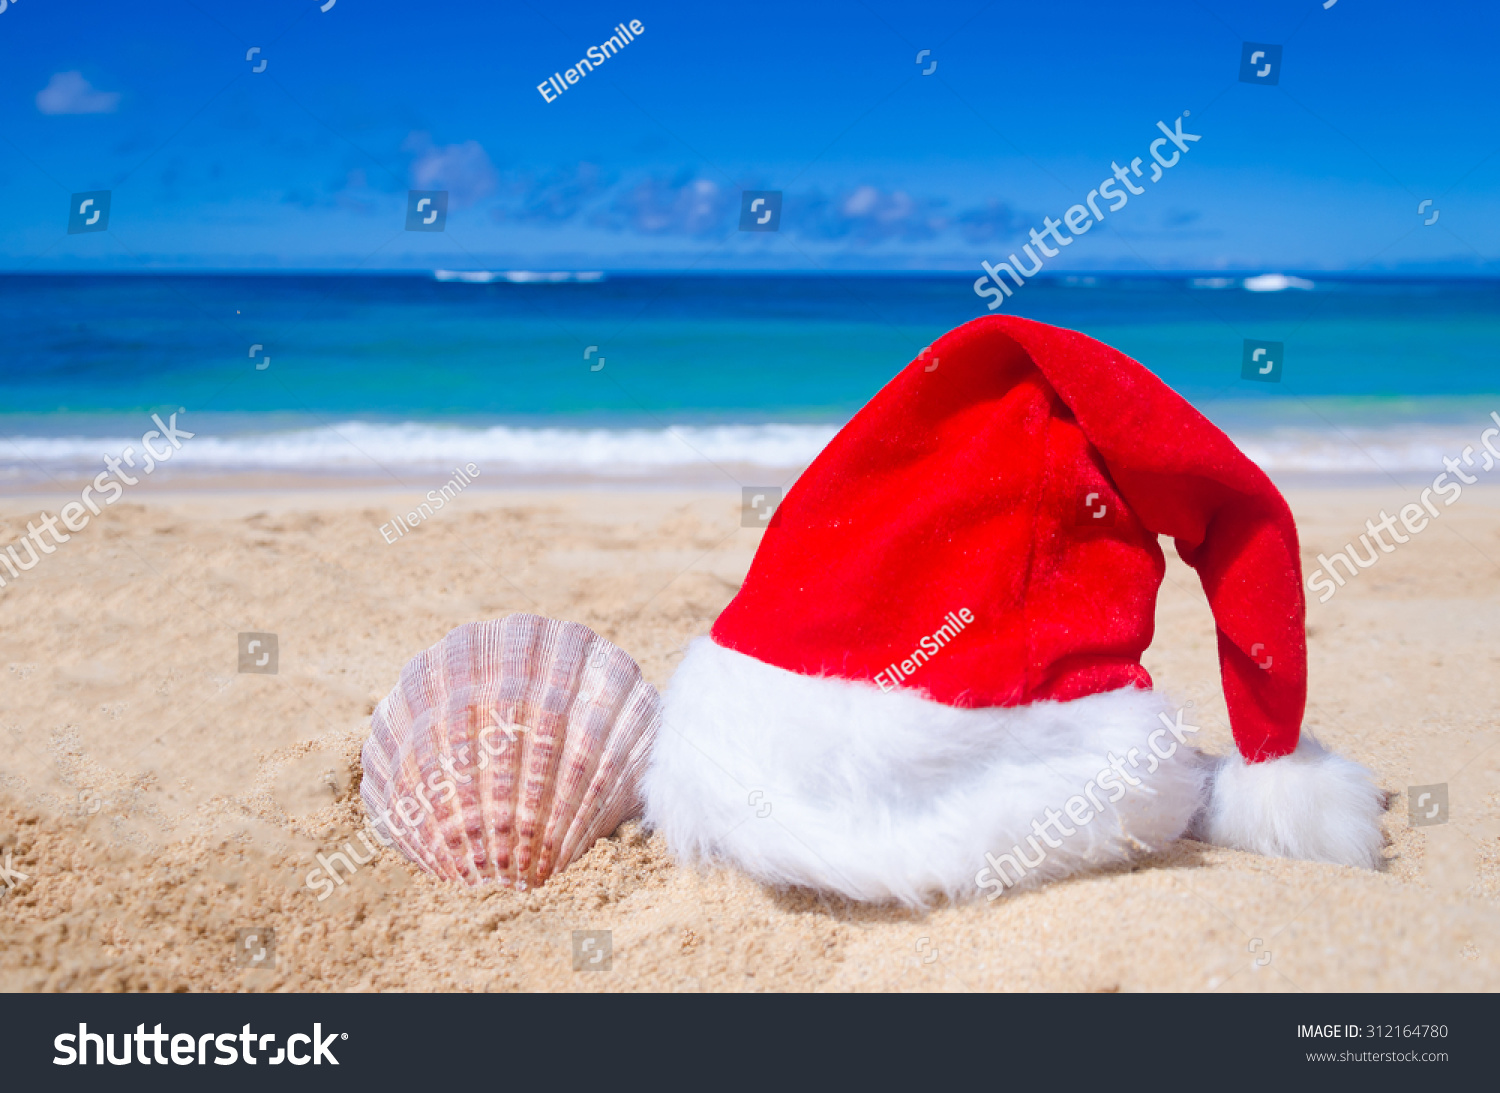 Merry Christmas and Happy New Year background with Santa Claus Hat and seashell on the tropical beach near ocean in Hawaii #312164780